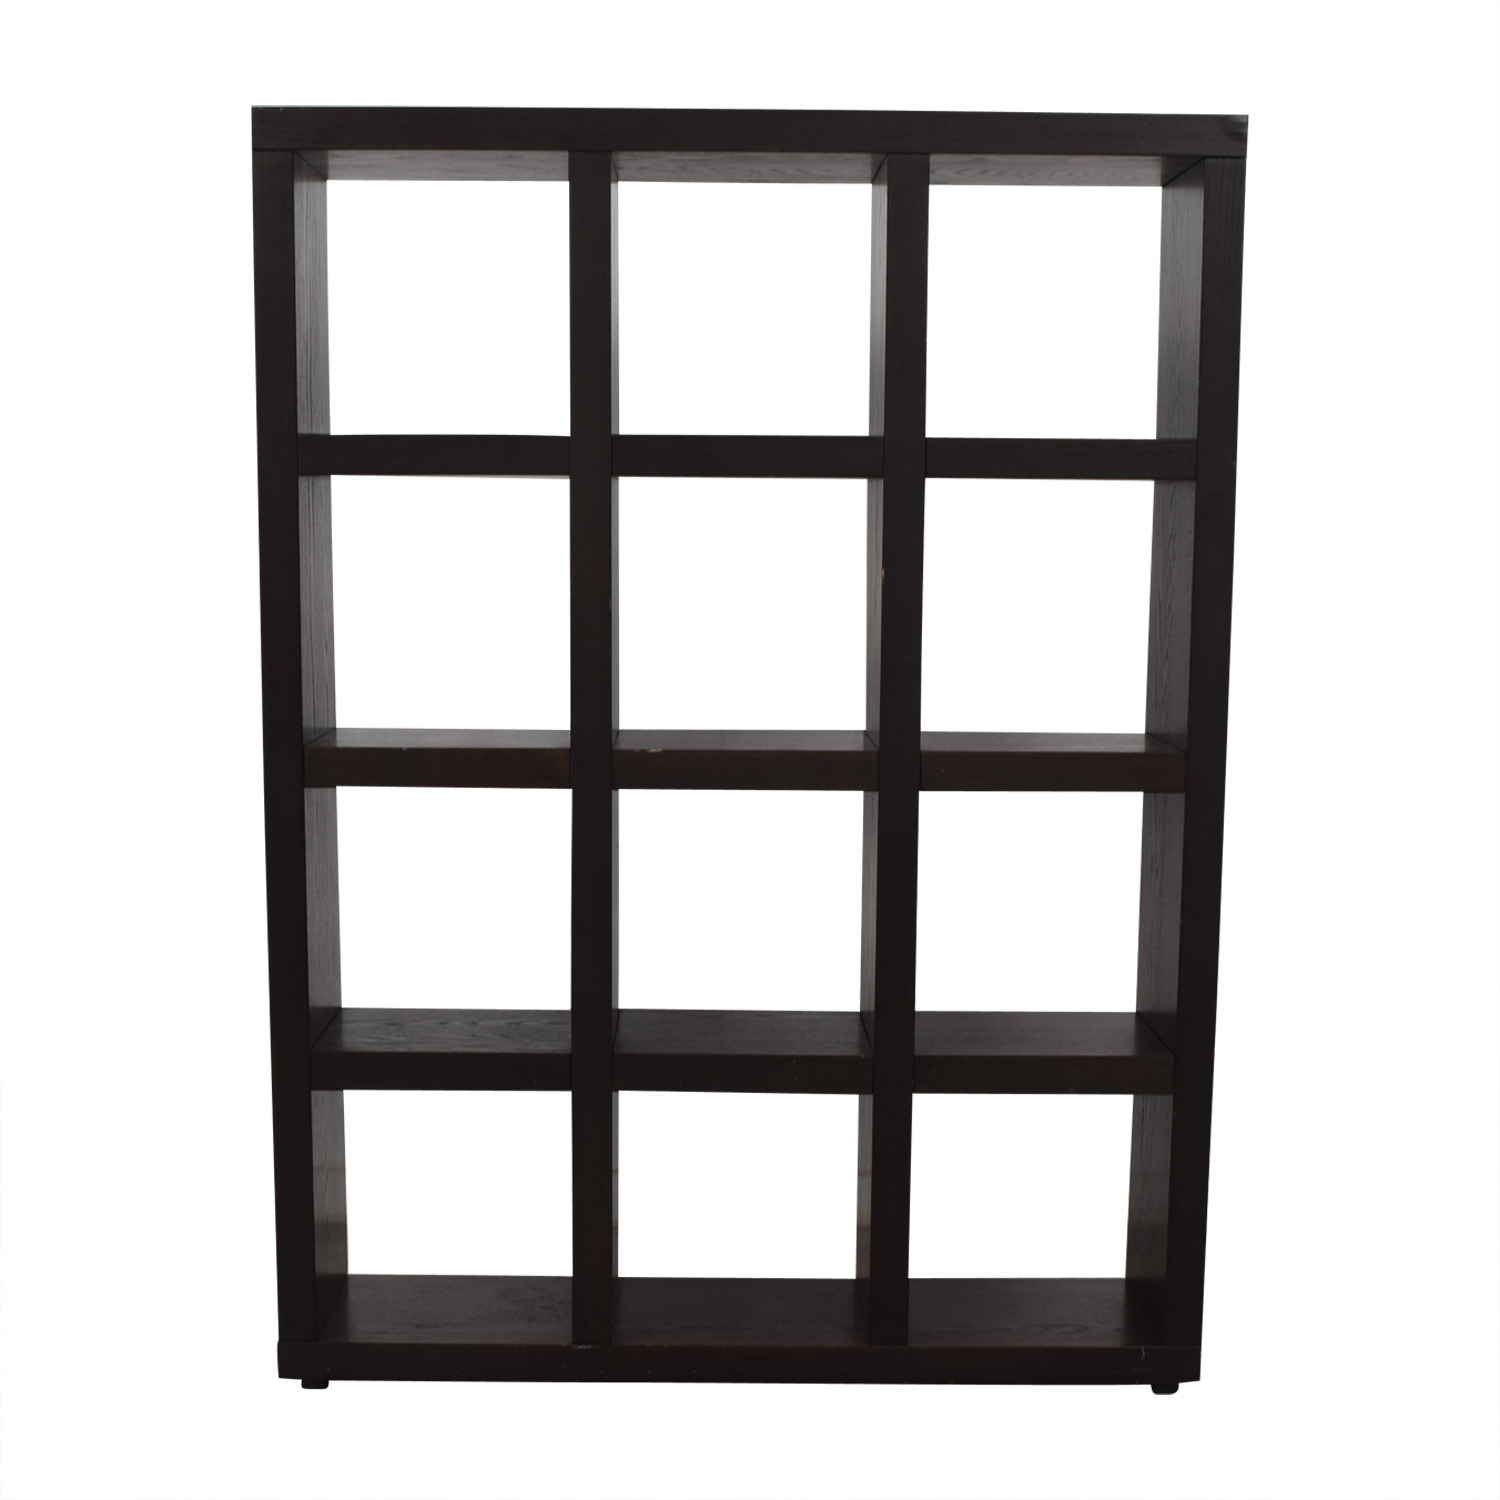 West Elm West Elm Tall Black Cube Bookshelf dark brown